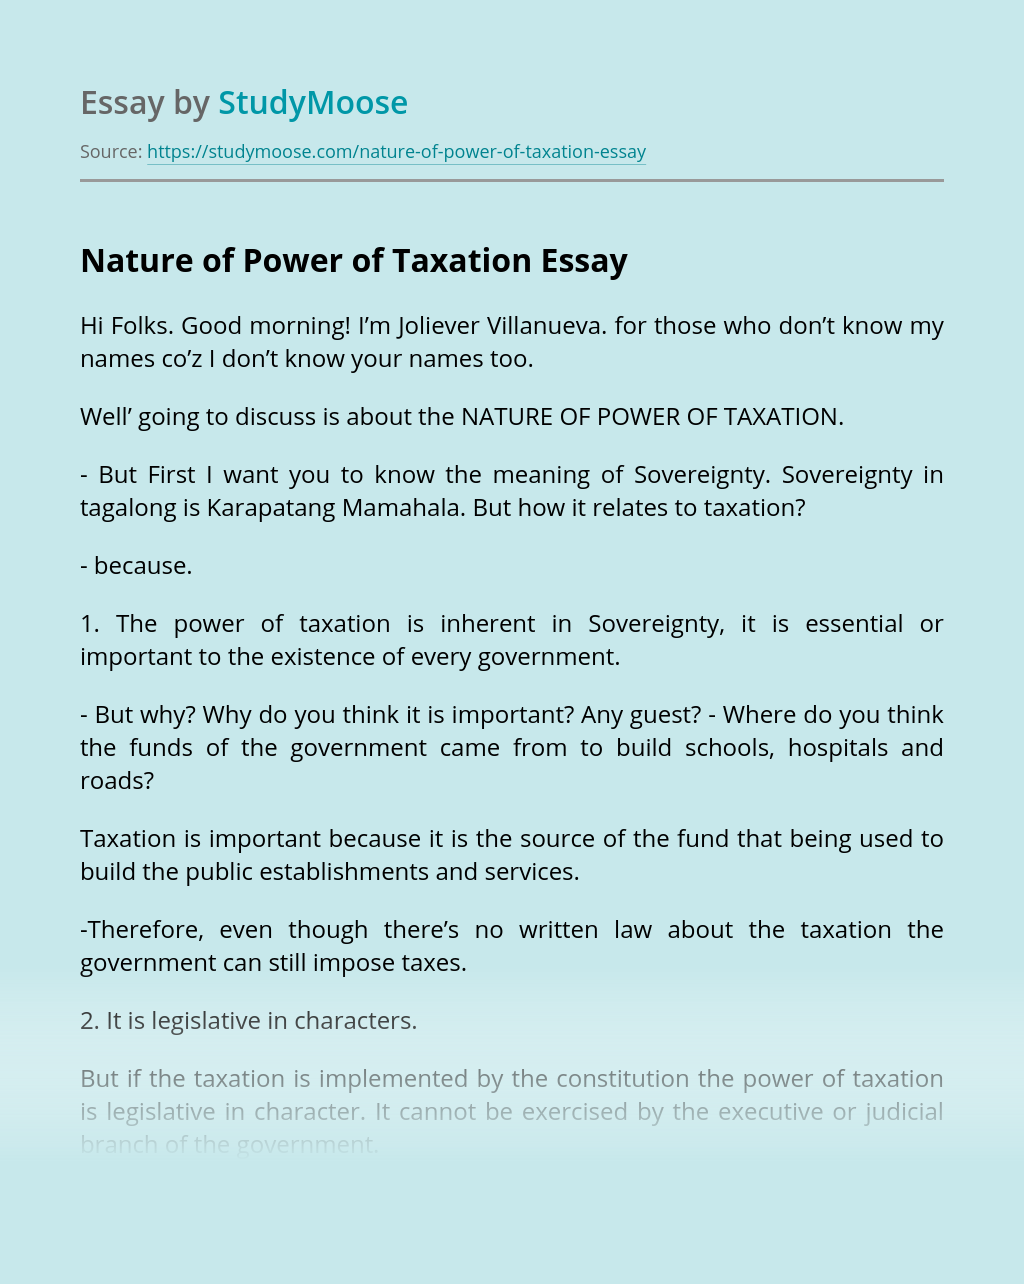 Nature of Power of Taxation